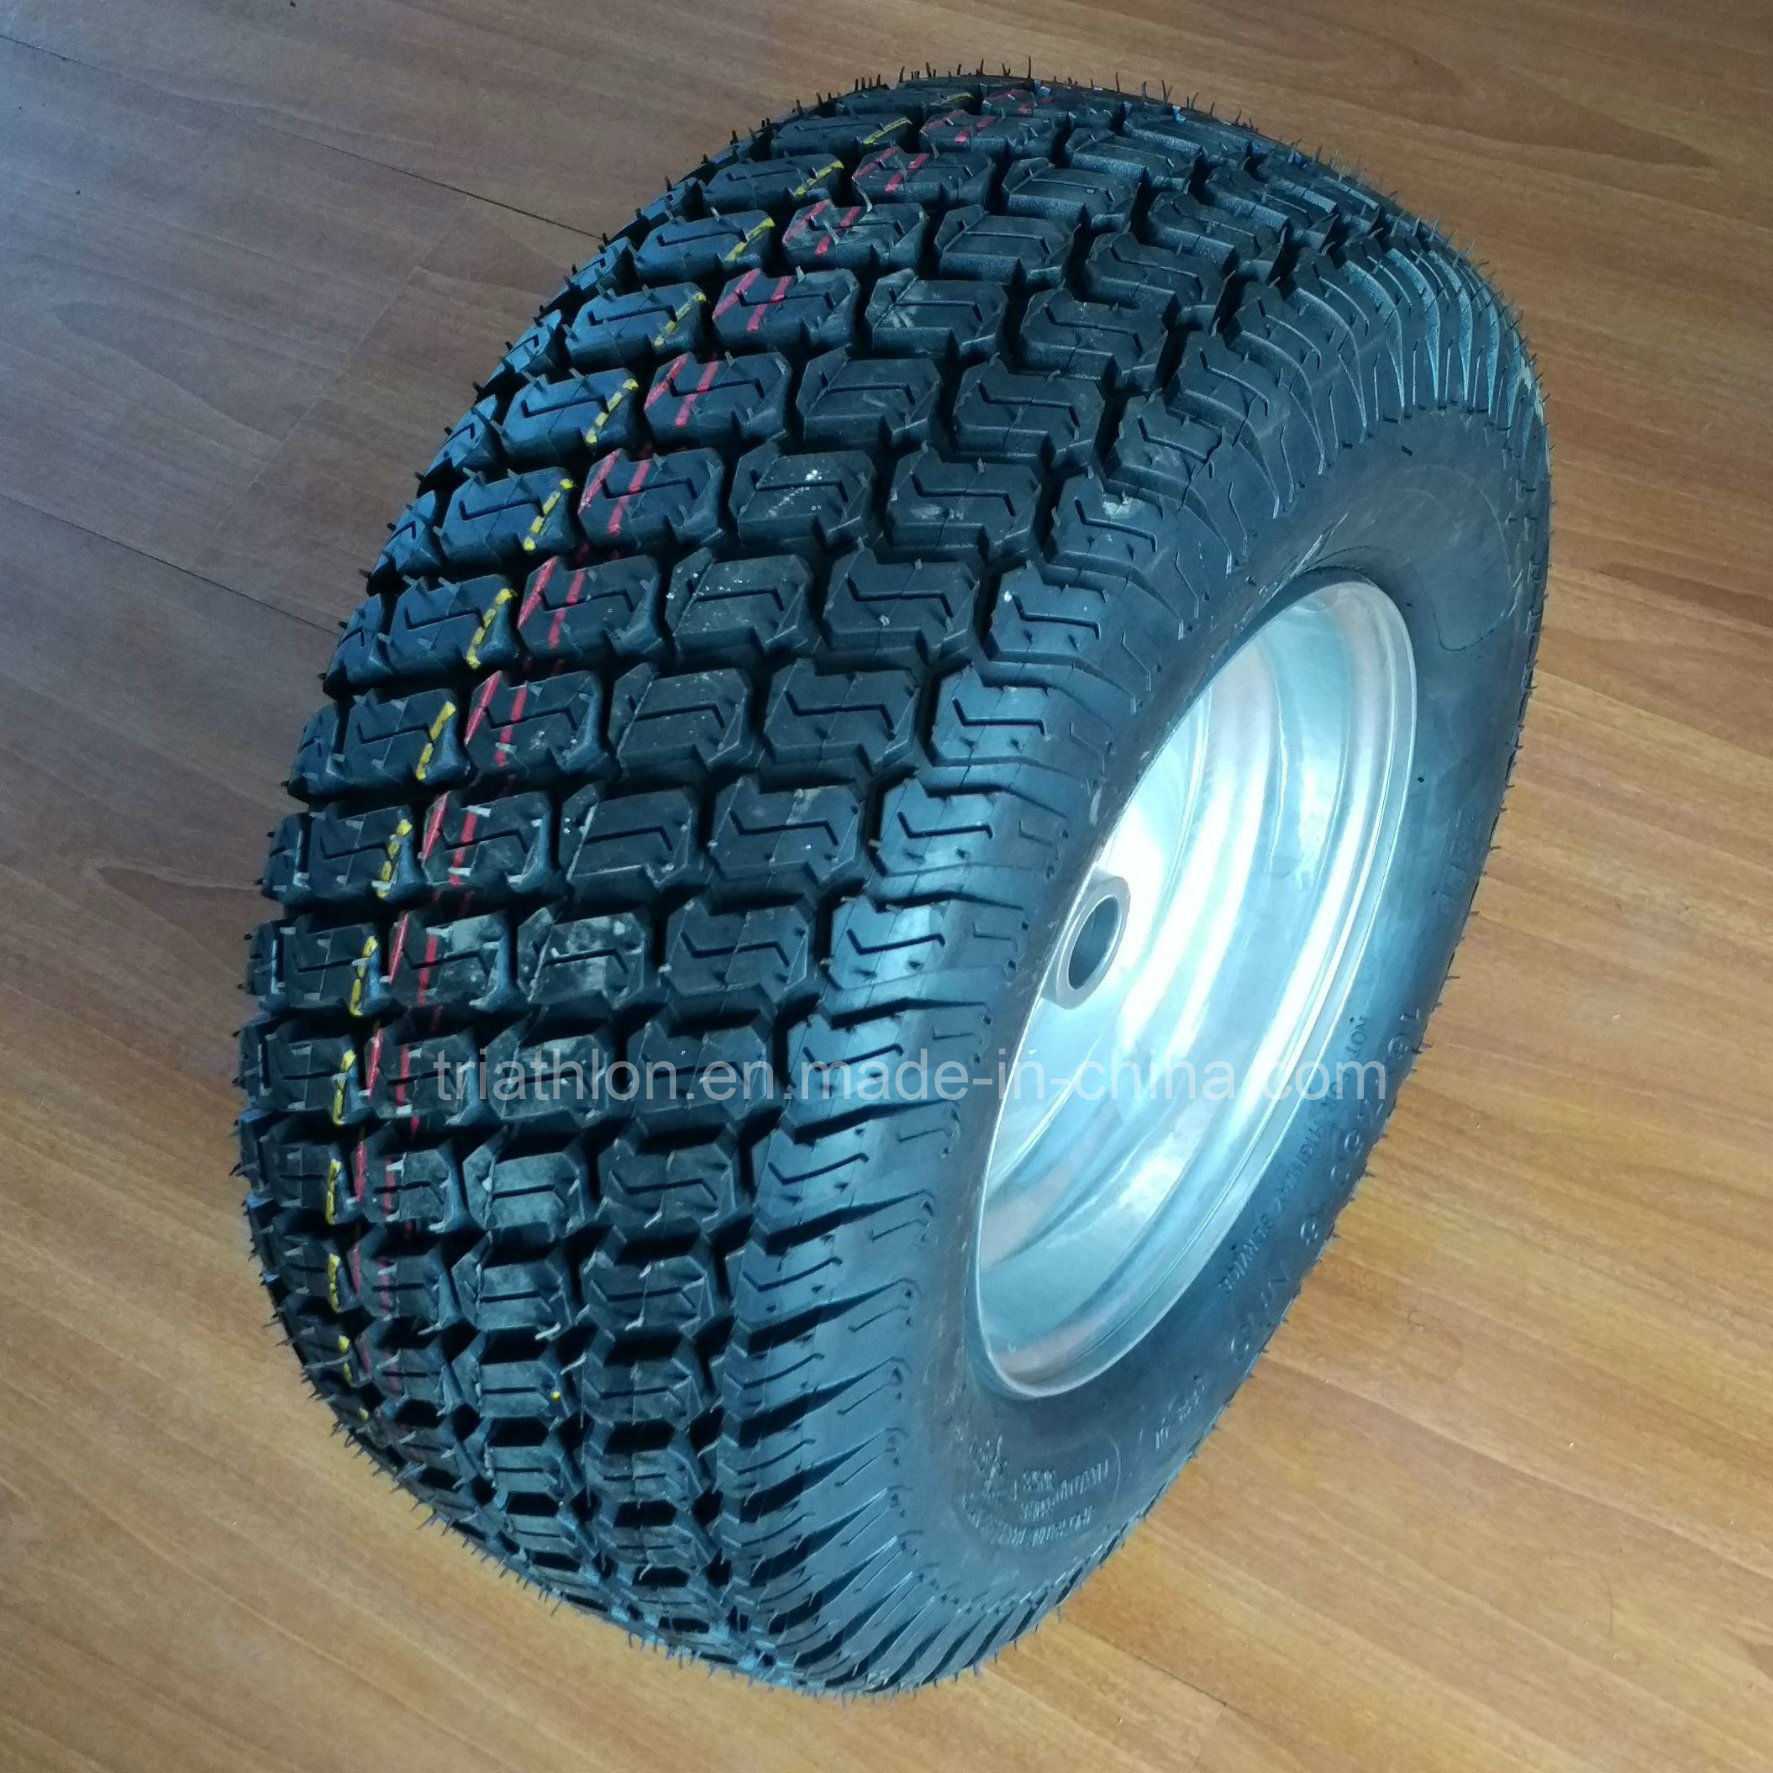 13X6.50-6 Turf Flat Free Lawn Mover Tires